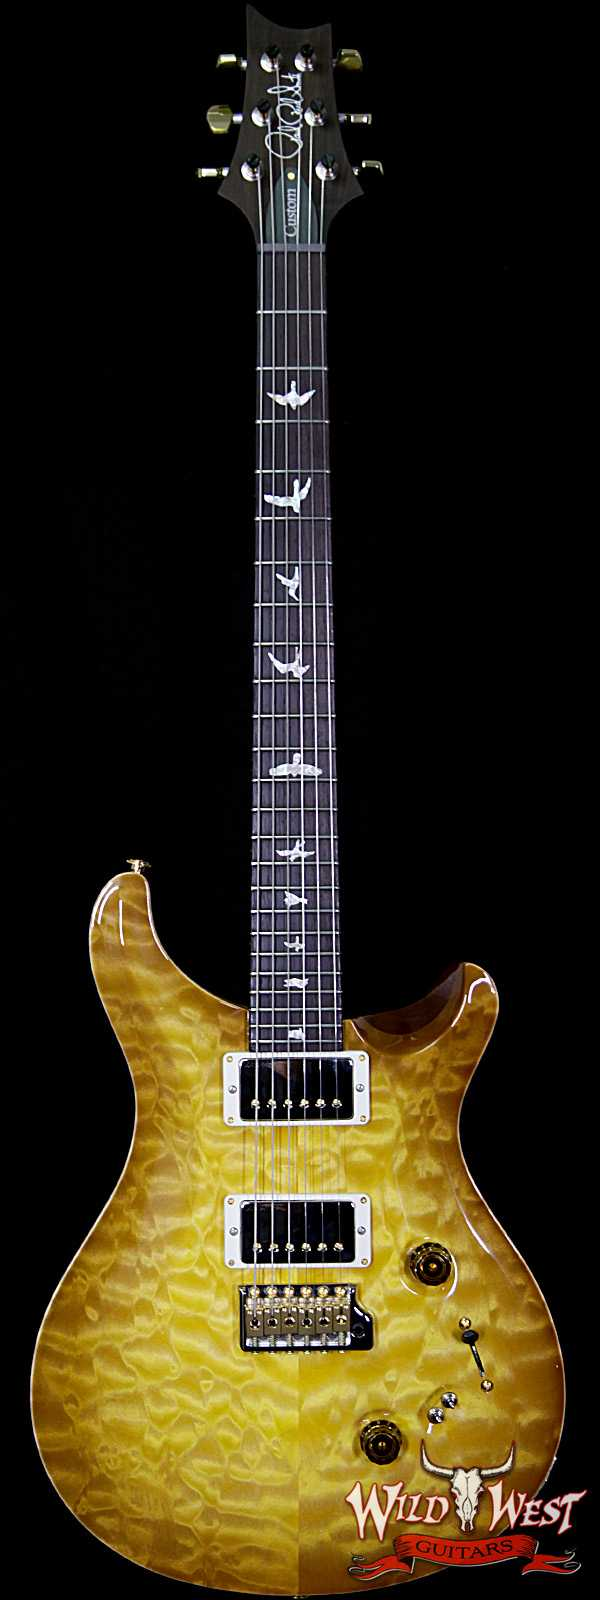 PRS Wood Library Quilted 10 Top Custom 24-08 Flame Mahogany Neck Brazilian Rosewood Board Livingston Lemondrop